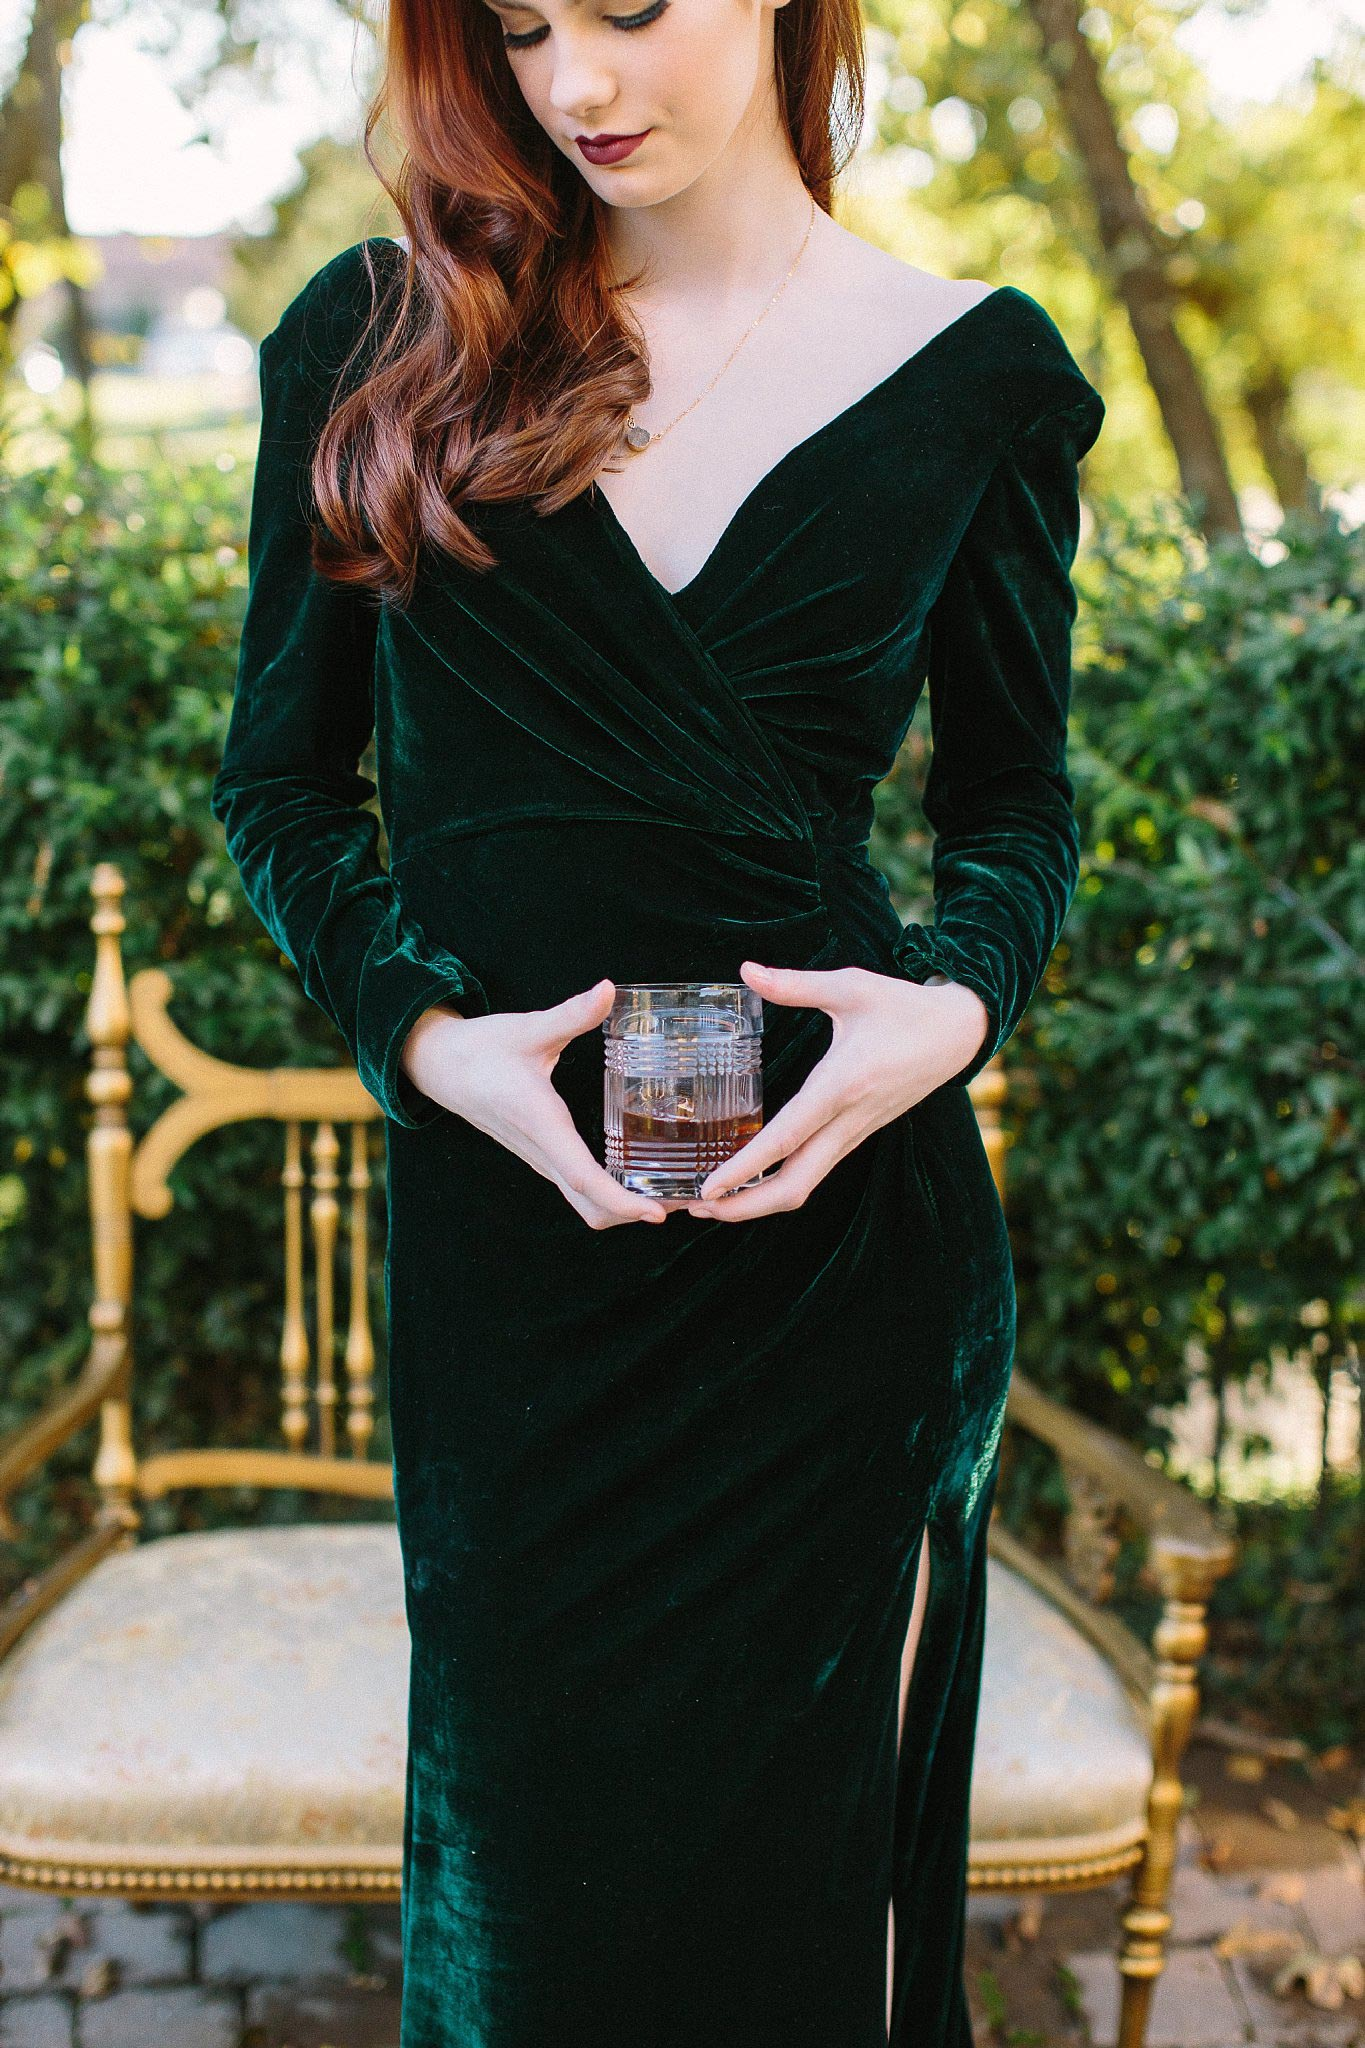 aristide mansfield wedding bridesmaid with velvet green dress holding glass of whiskey